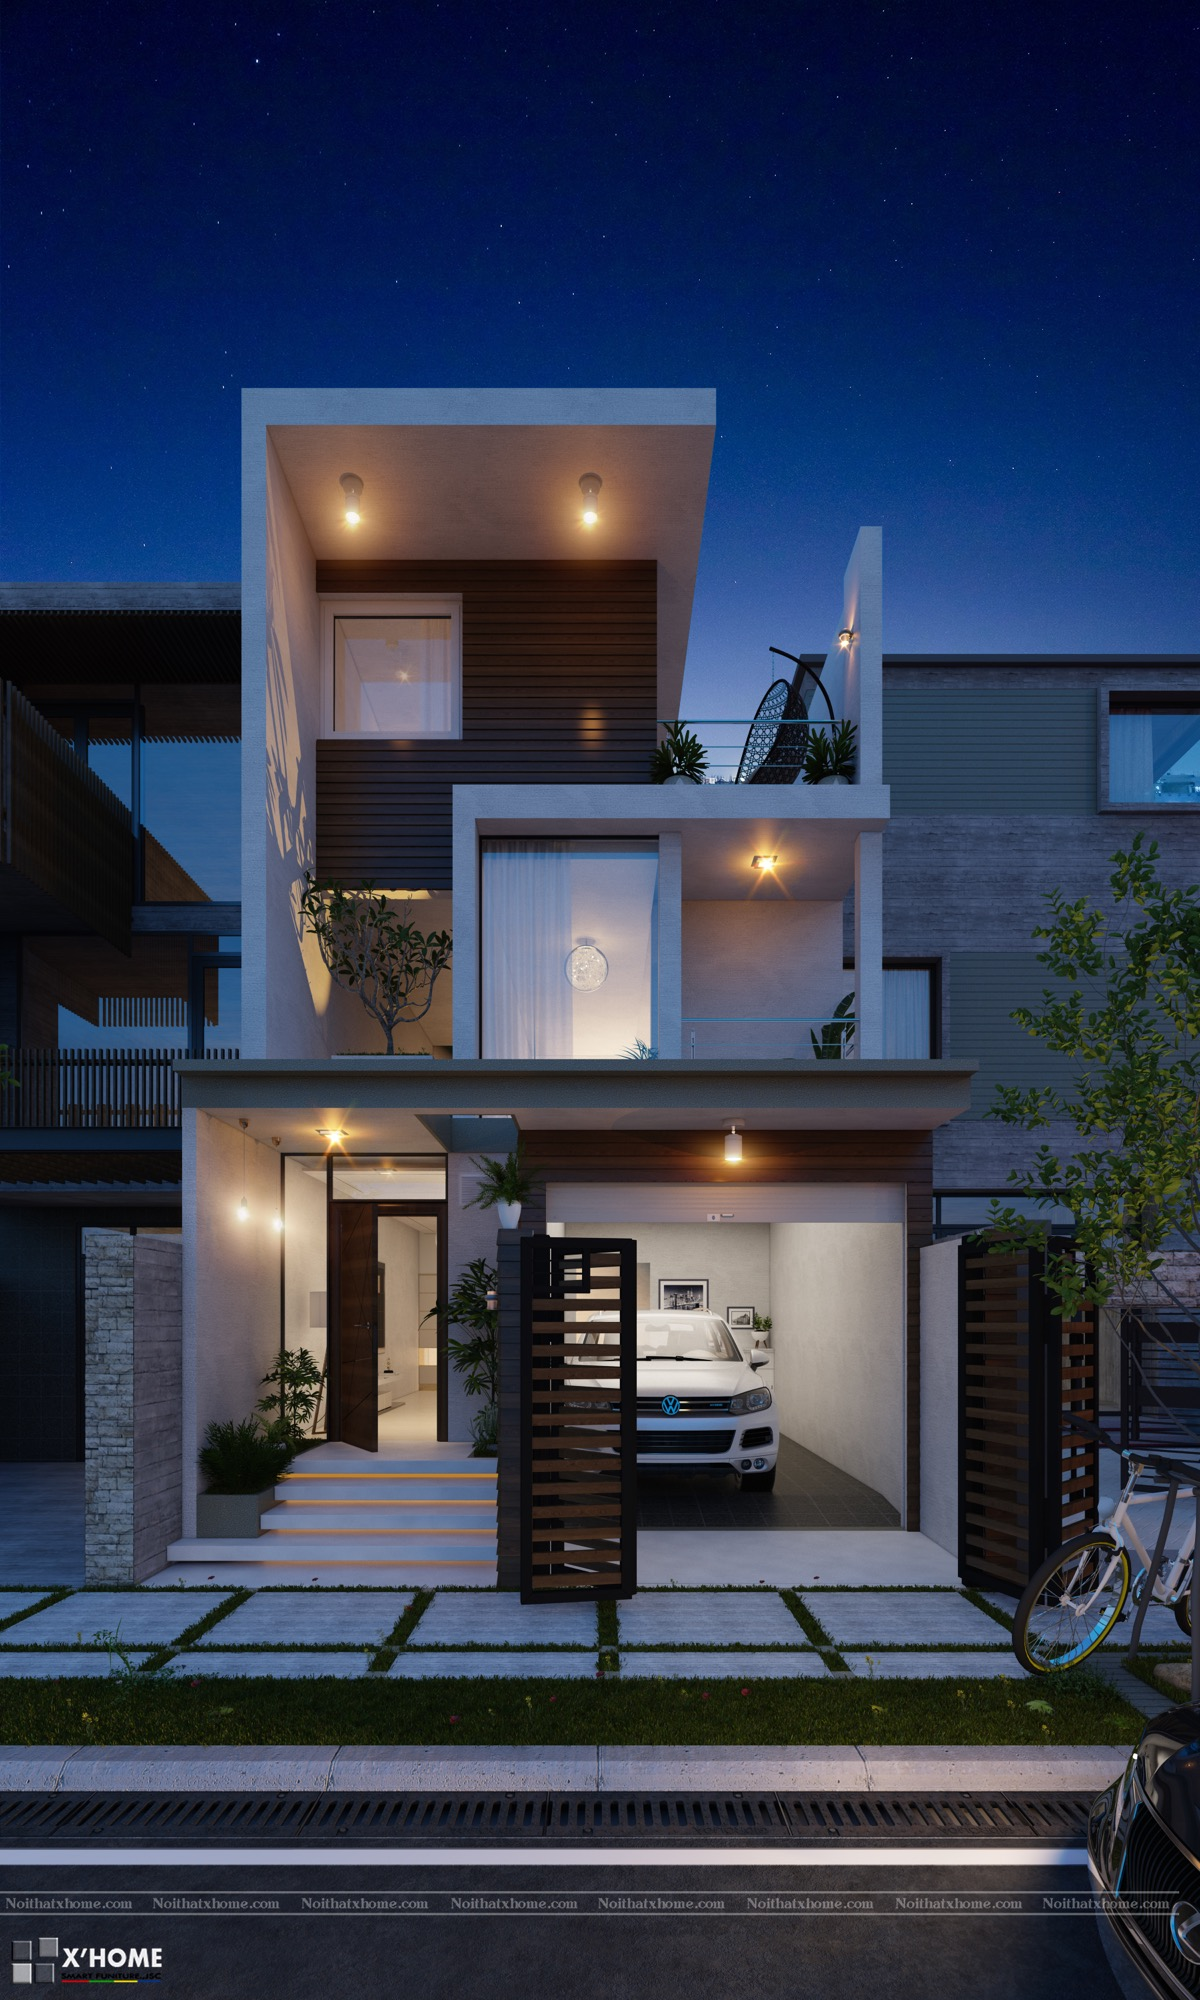 50 Narrow Lot Houses That Transform A Skinny Exterior Into ... on victorian narrow house plans, 3-story house with elevator, narrow duplex house plans, narrow urban row house plans, 3-story small tower plans, long narrow floor plans, custom narrow house plans, 3-story house floor plans, long and narrow bathroom plans, long narrow house plans, 3-story beach house designs, 3-story traditional house plans, contemporary narrow house plans, 3-story house plans urban, narrow lot house plans, craftsman narrow house plans, 3-story tiny house plans, luxury 3-story house plans, 3-story house with pool, 3-story beach house plans,